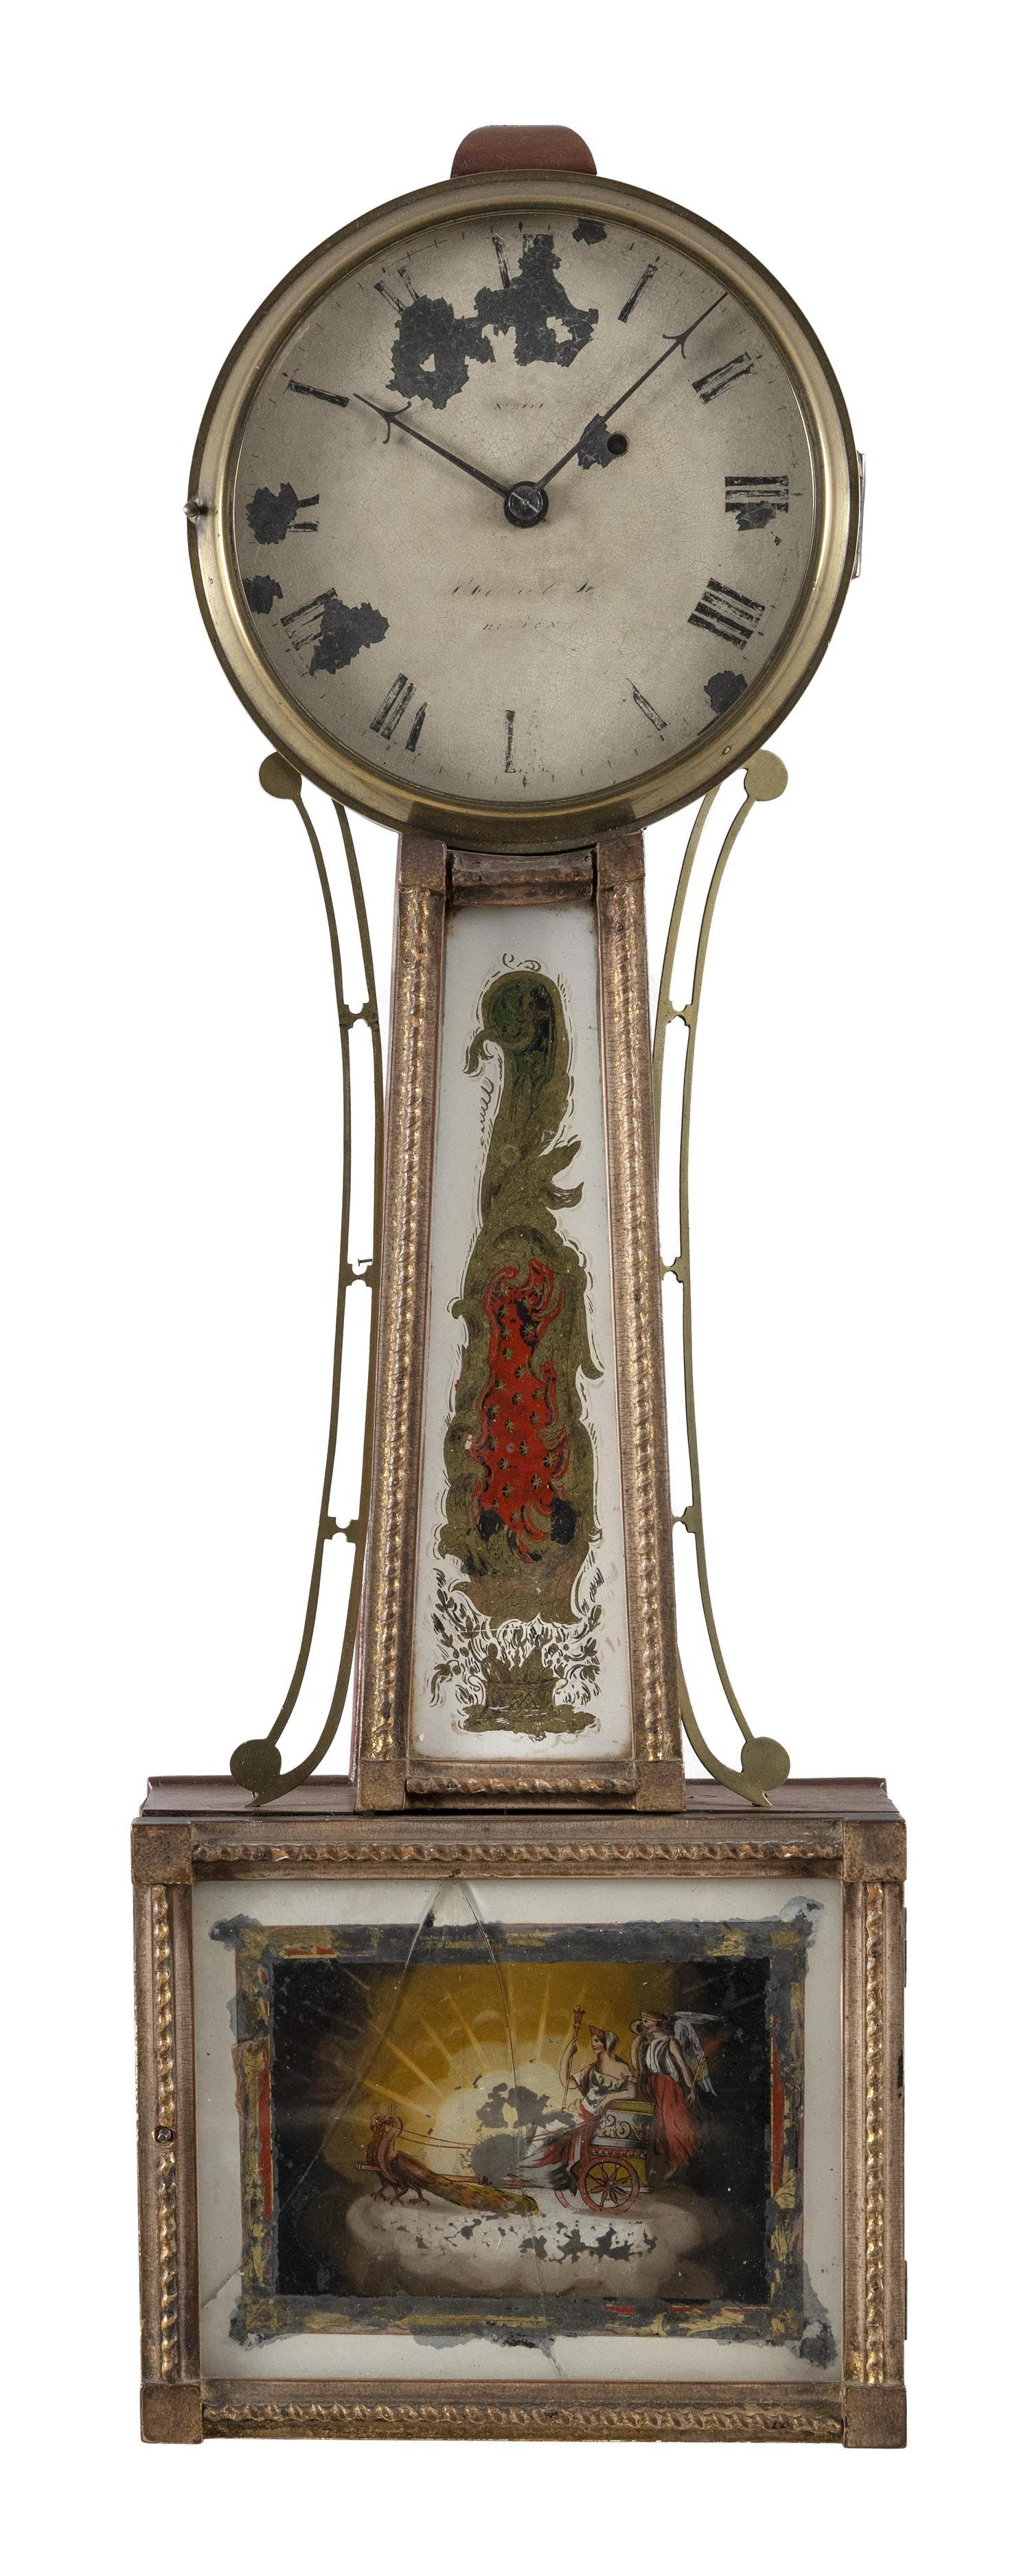 BANJO CLOCK Traces of illegible signature on face, possibly Aaron Willard. Mahogany case with turned wooden finial and brass sidearm...